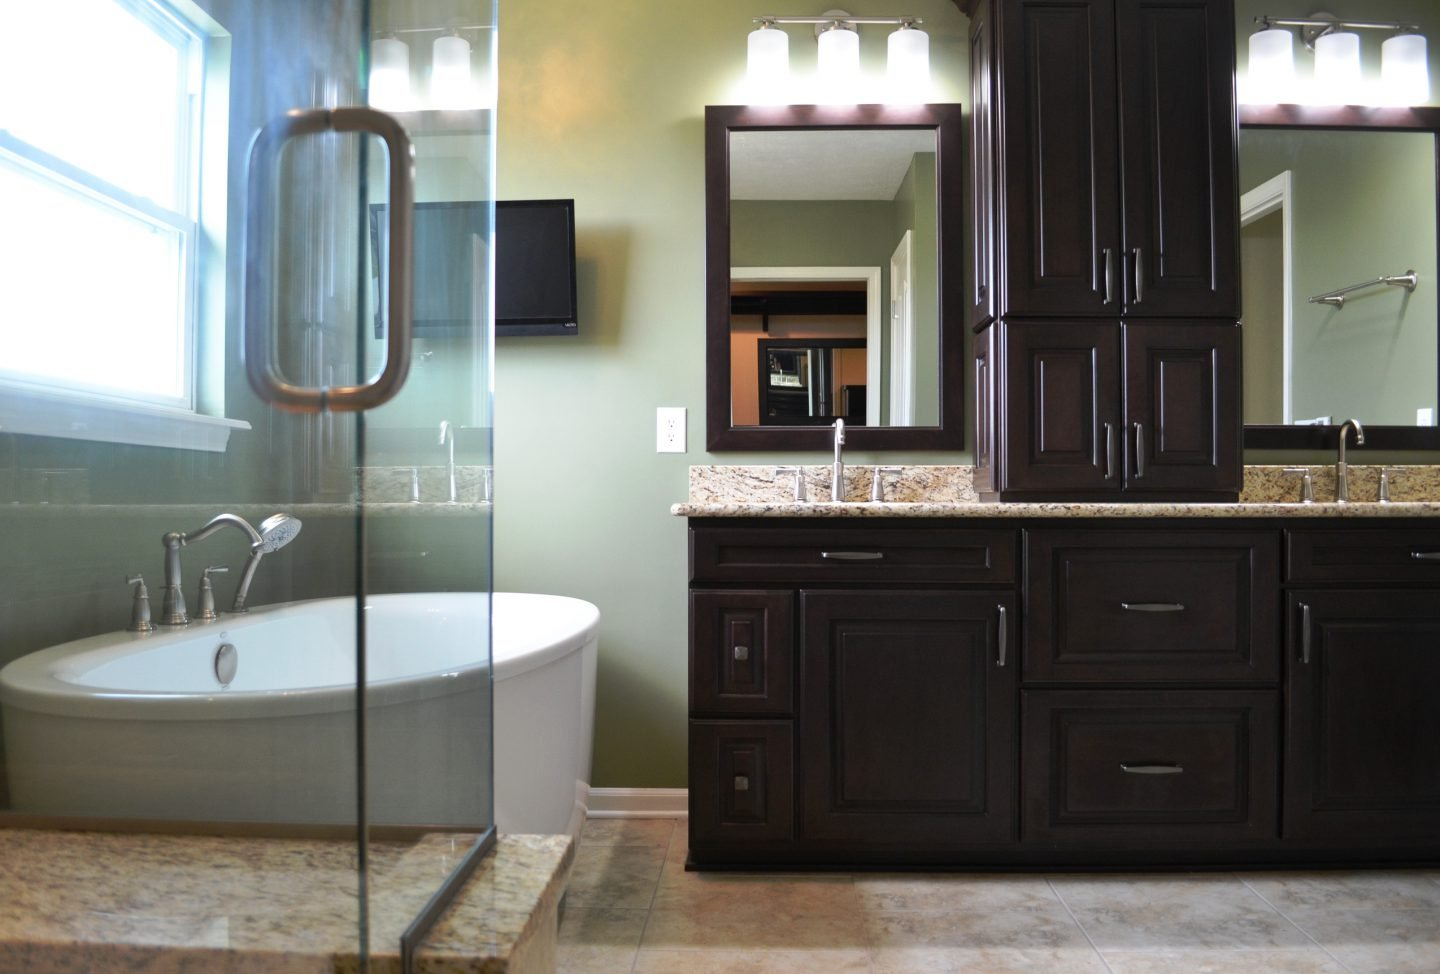 Sorge Bathroom And Closet Remodel Zionsville Aco